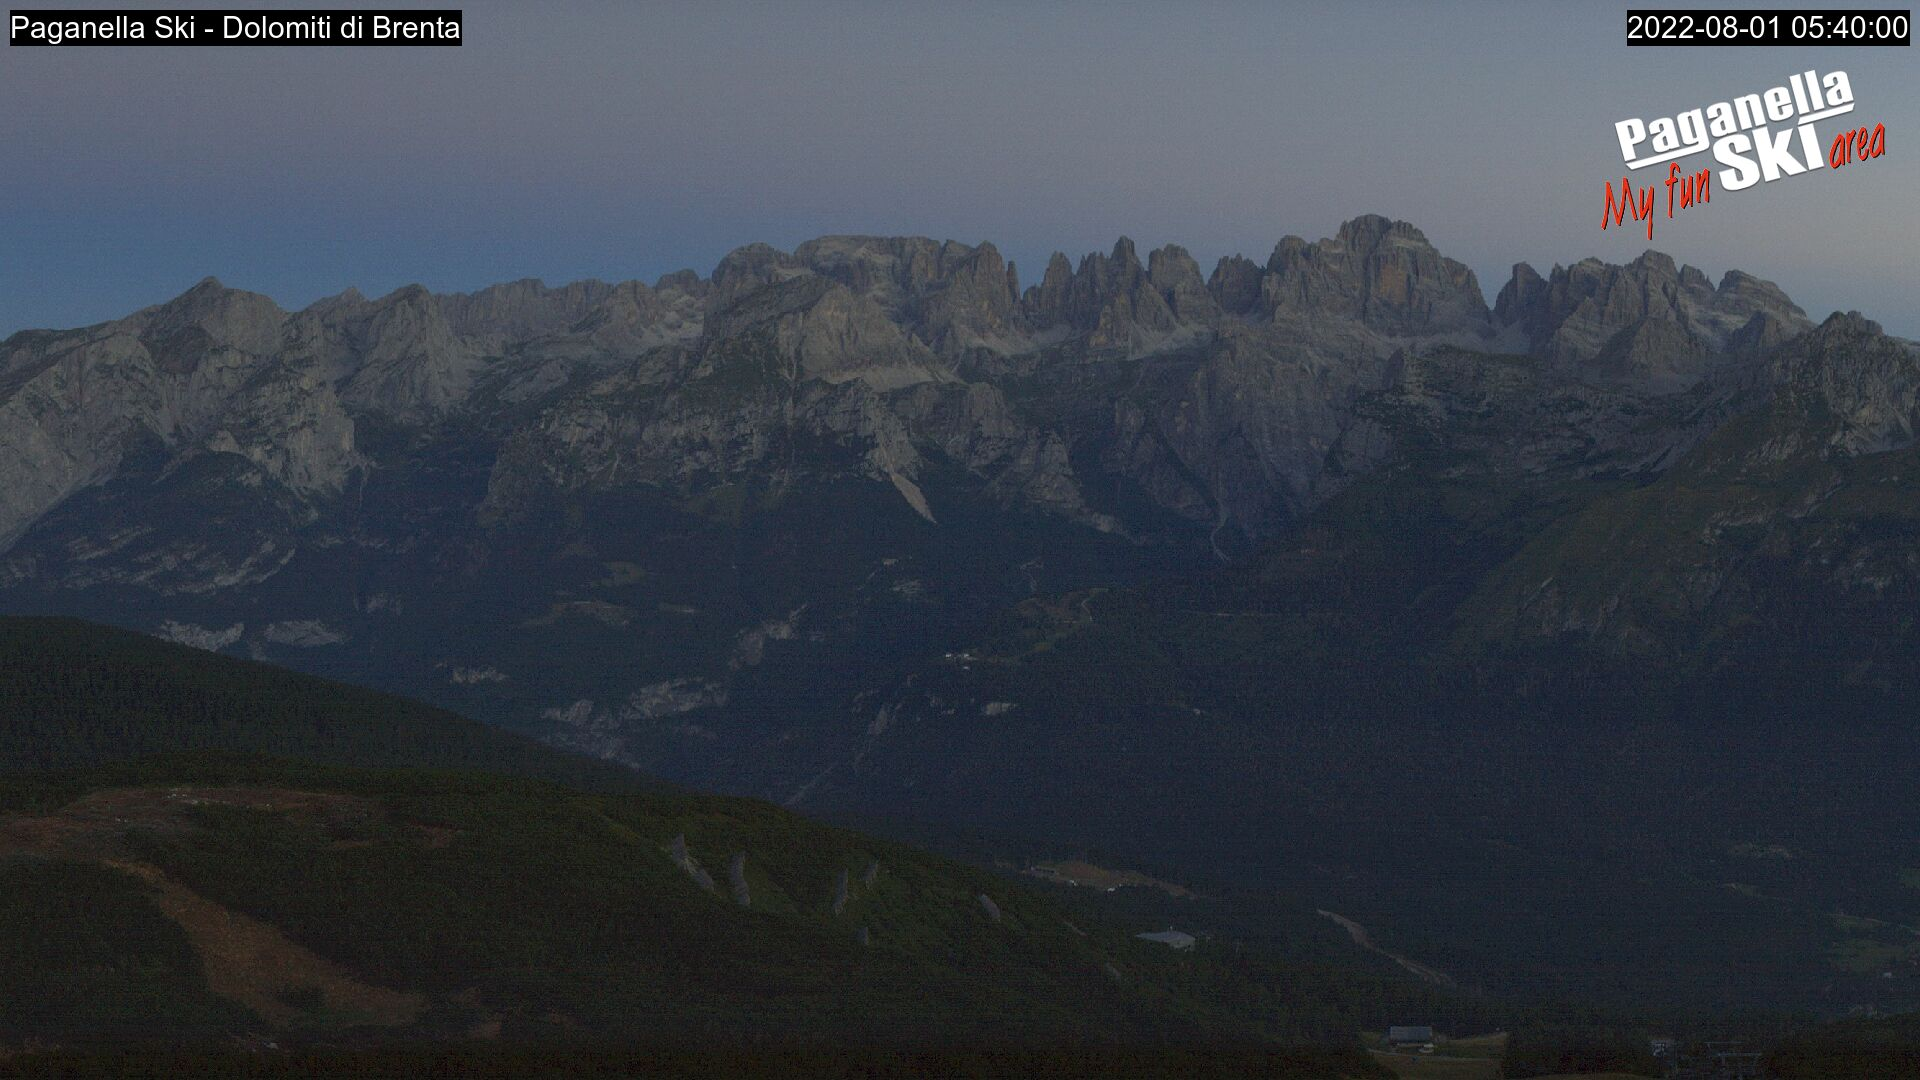 View to the Dolomiti di Brenta